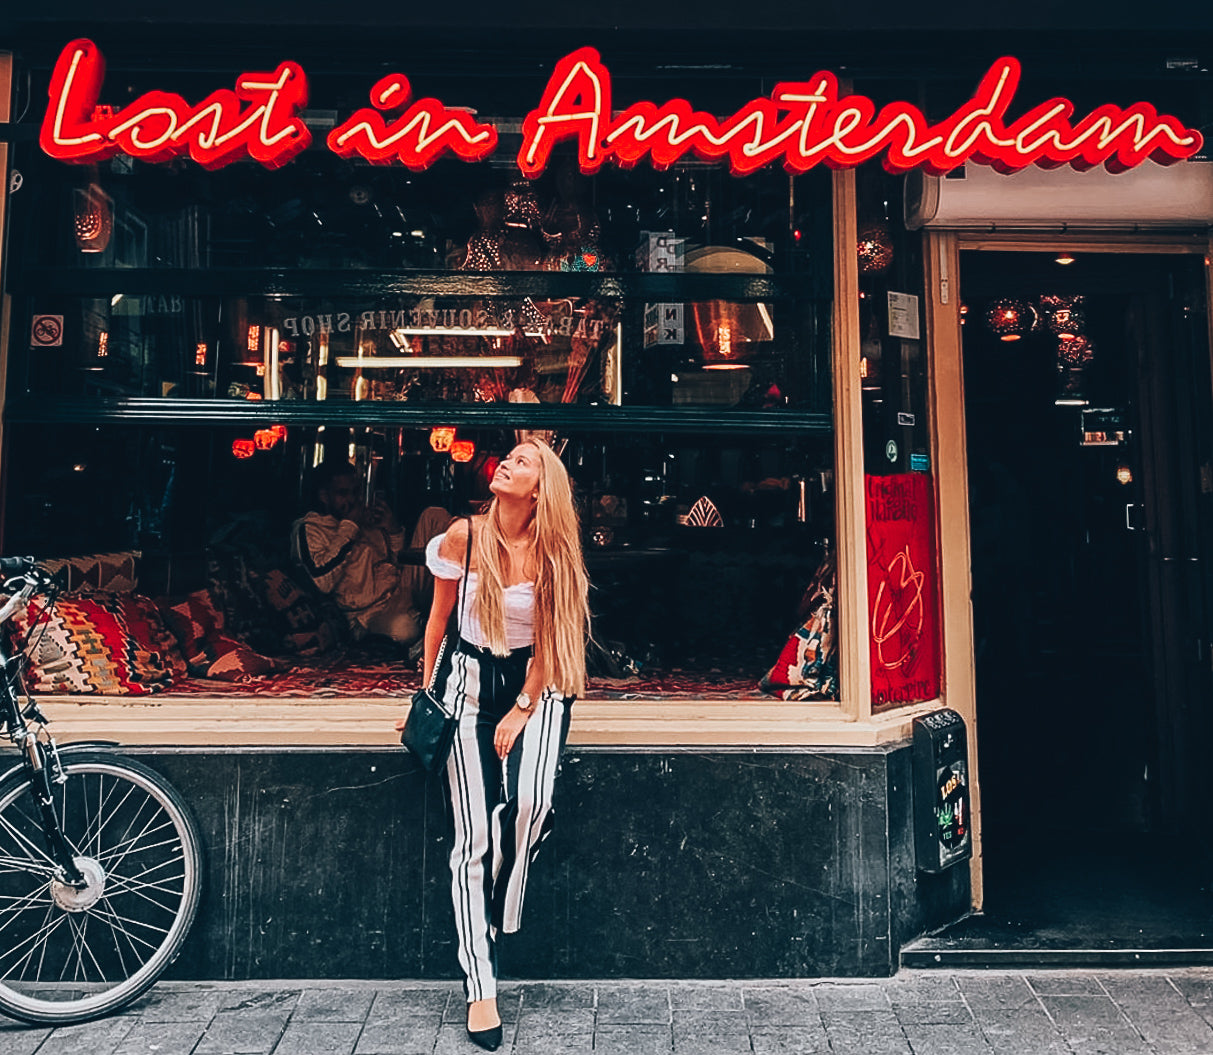 lost in amsterdam cocktail bar, travel europe